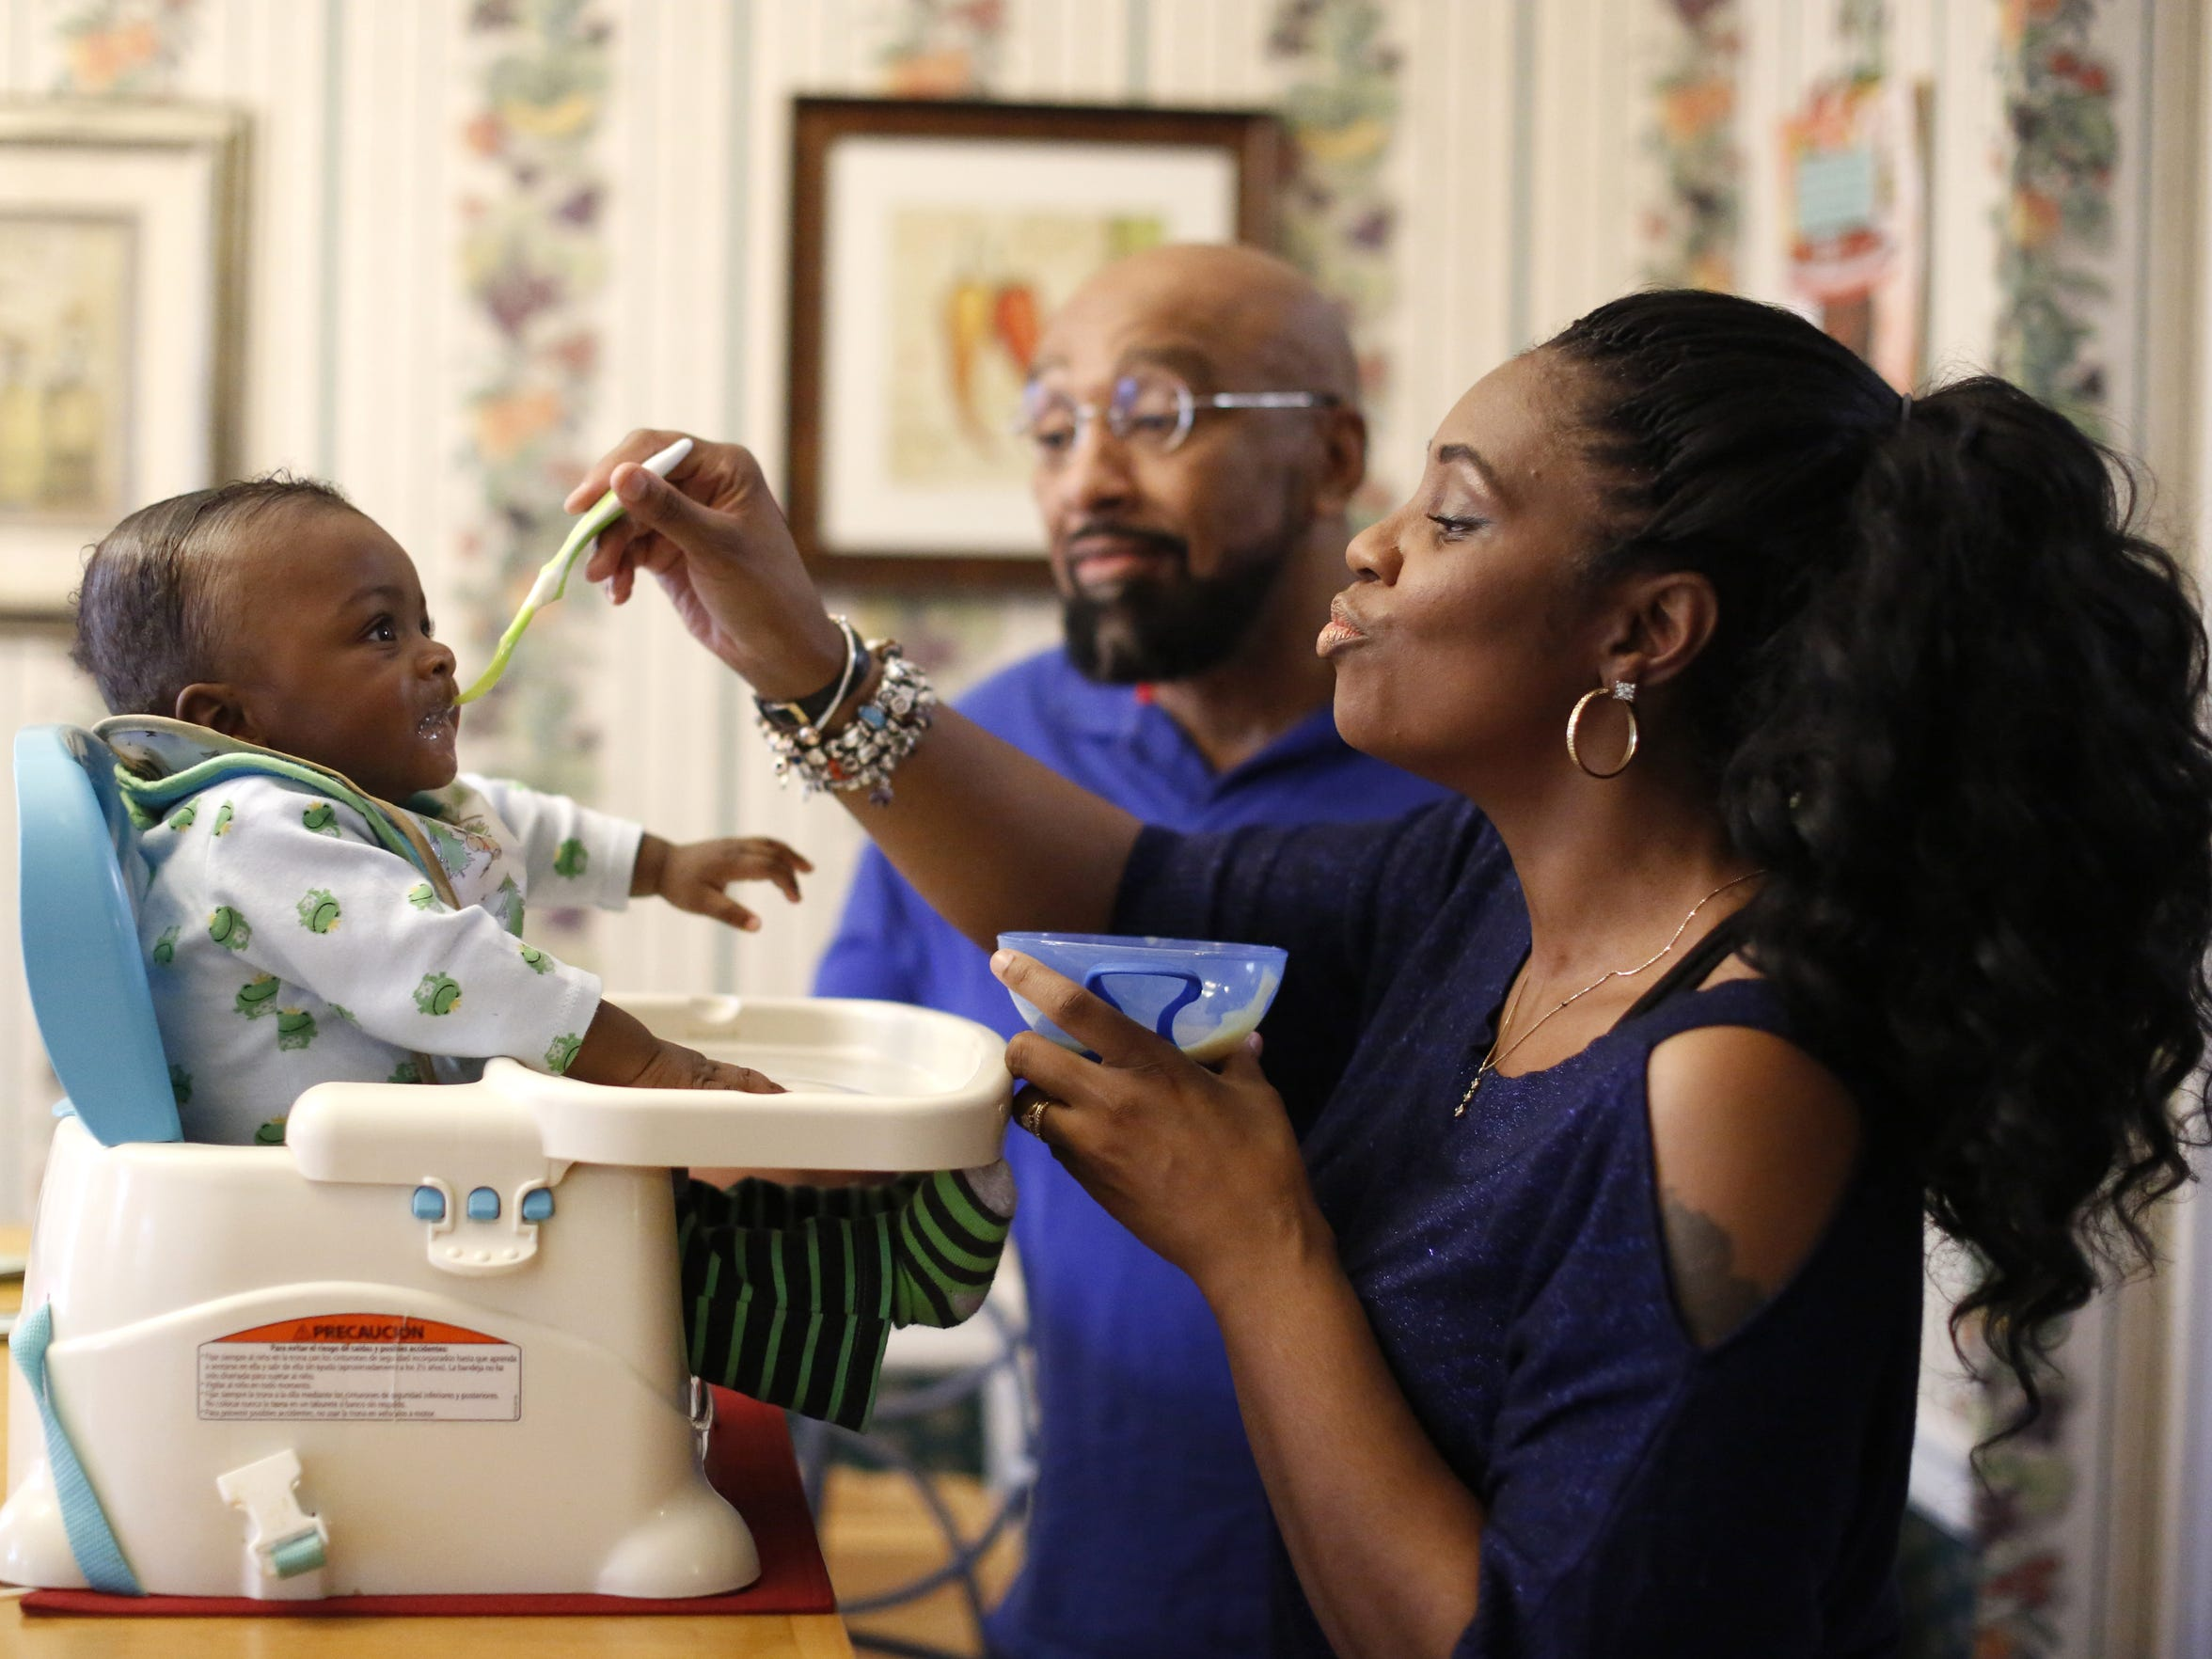 Lorraine Nichols feeds her seven-month-old son Caleb Charlie Nichols as her husband Charles stands by Dec 12.